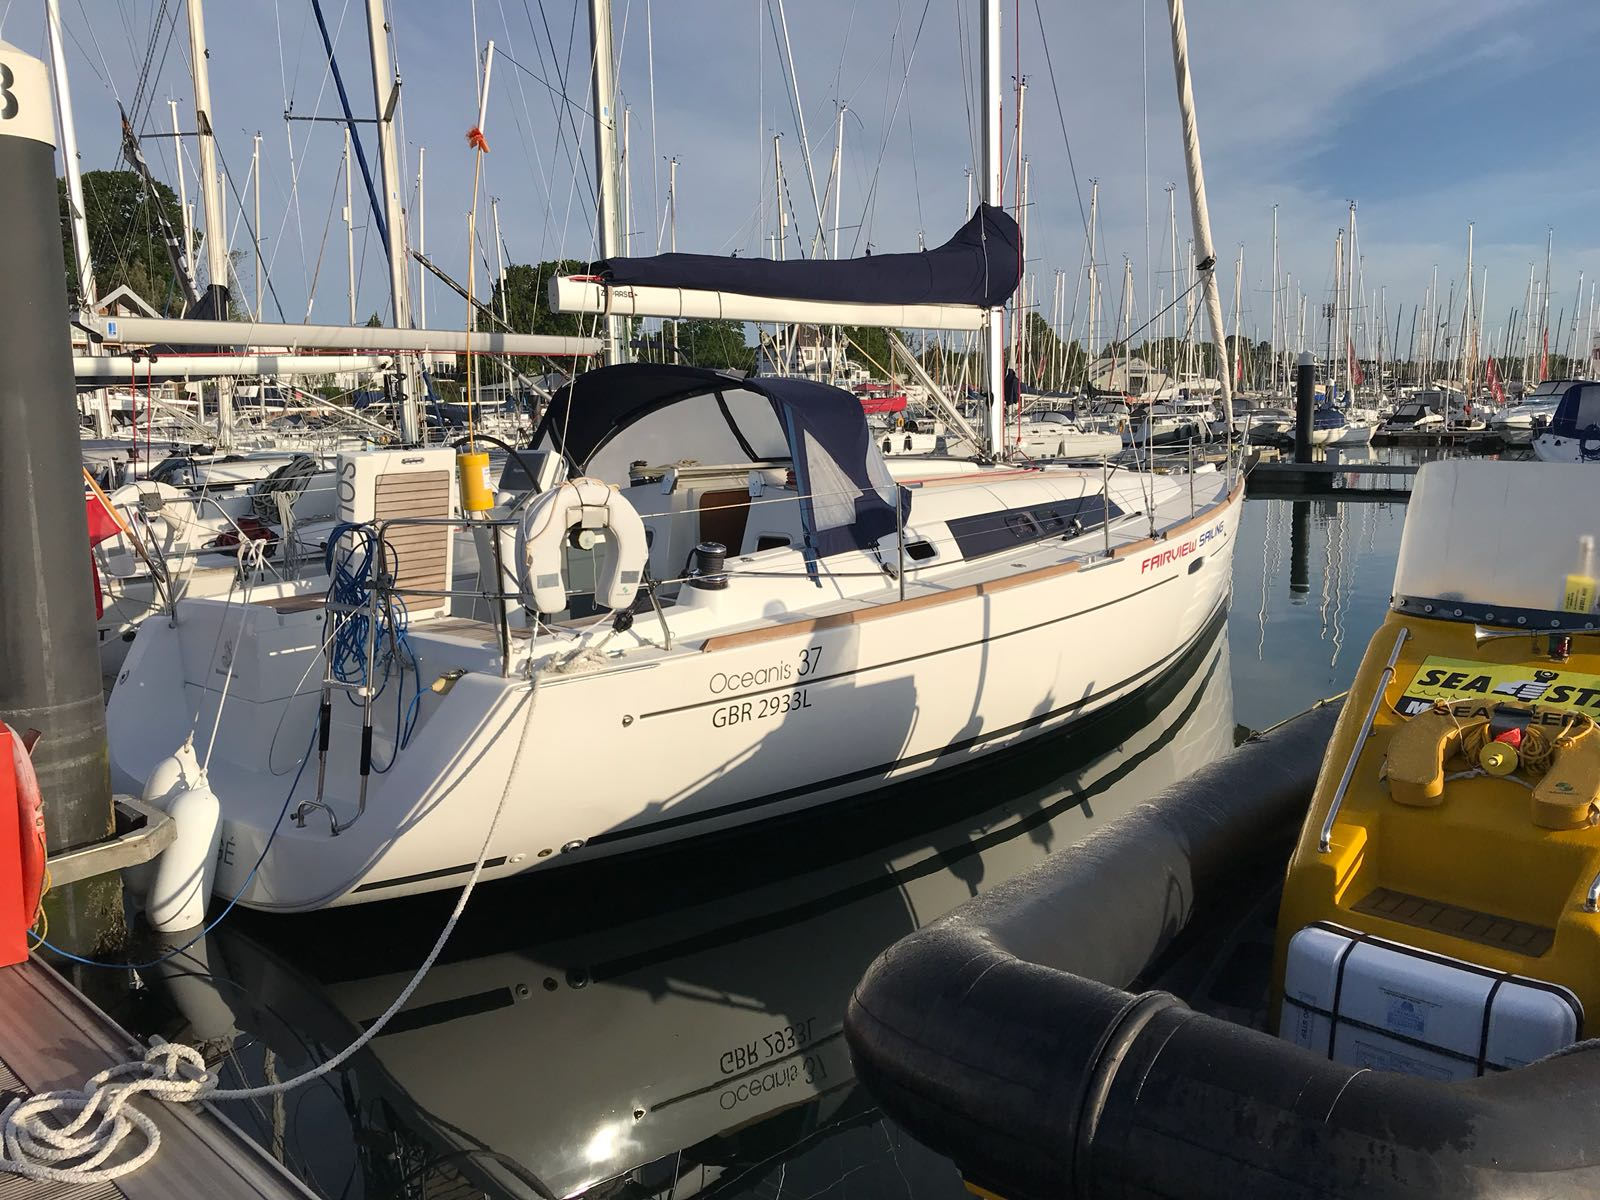 Protege ready for RYA Day Skipper course